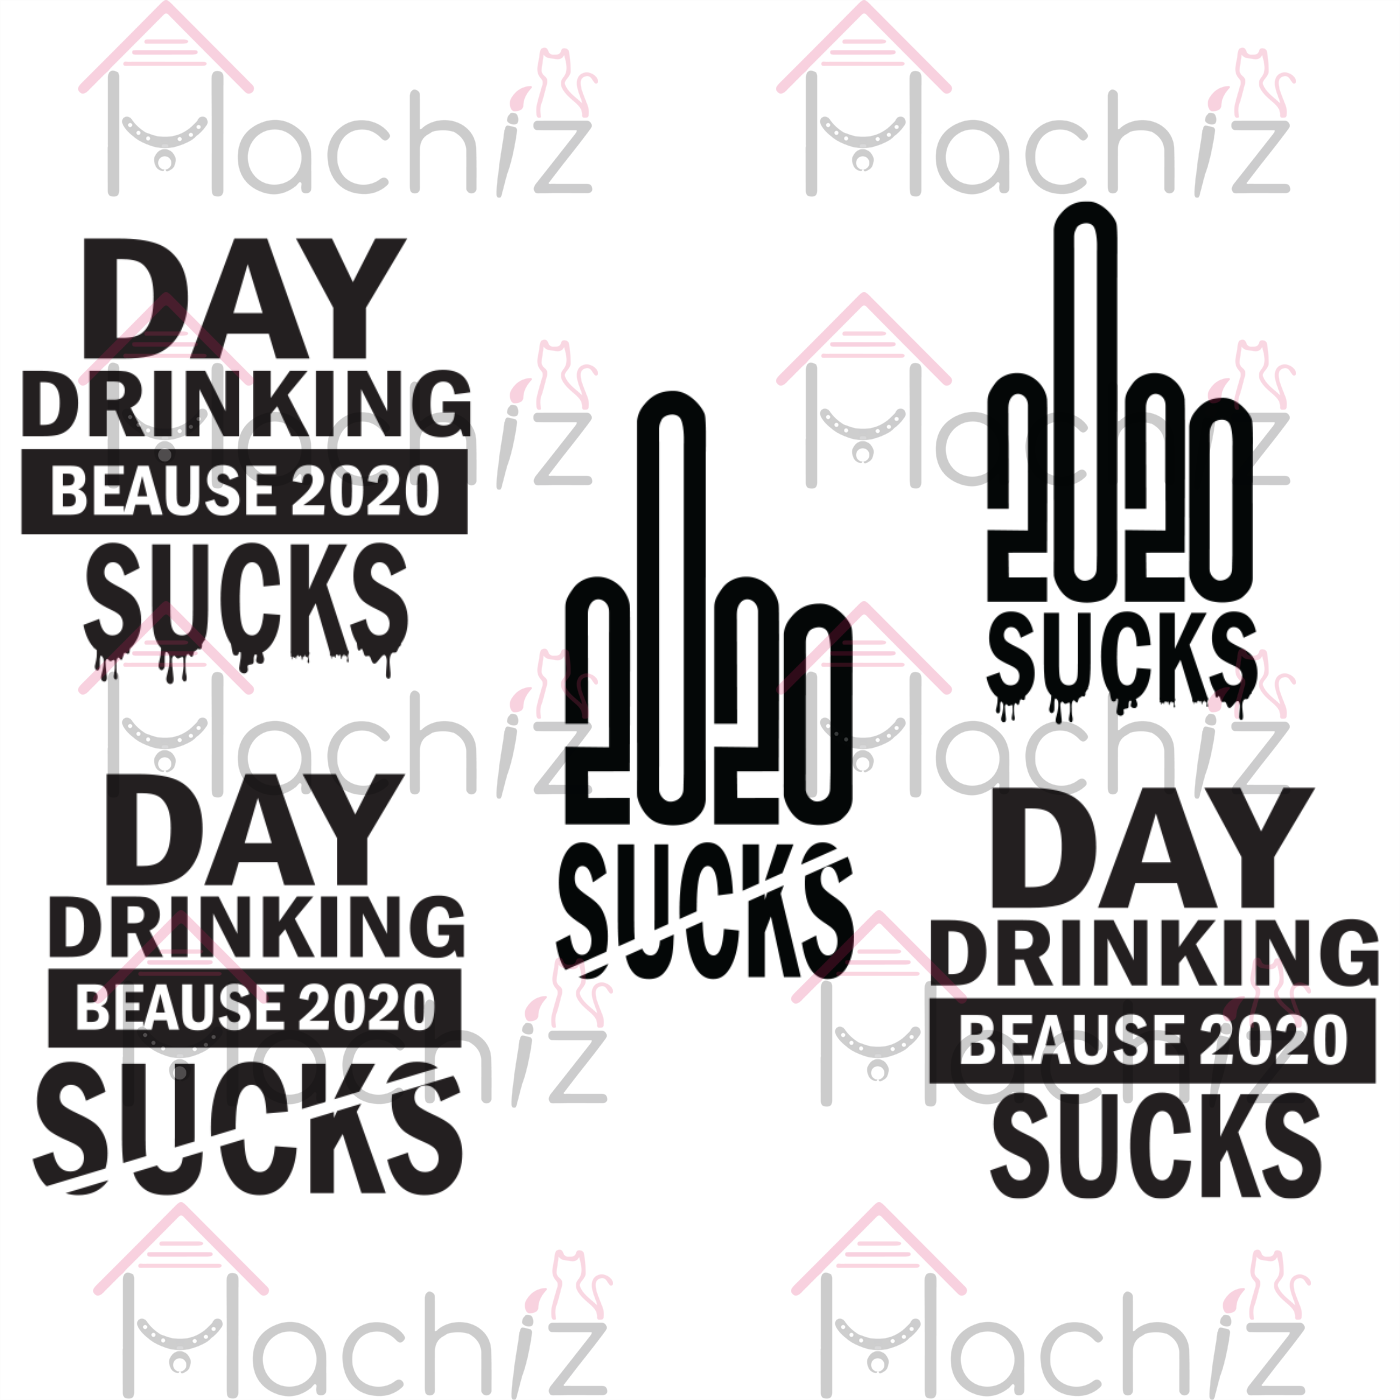 Day Drinking because 2020 Sucks , Trending Svg, Quarantine Shirt, Inspirational Shirt, Social Distancing Shirt, Girls Weekend Shirts, Girls Trip Shirts,funny svg, Drinking svg, Funny Drinking,